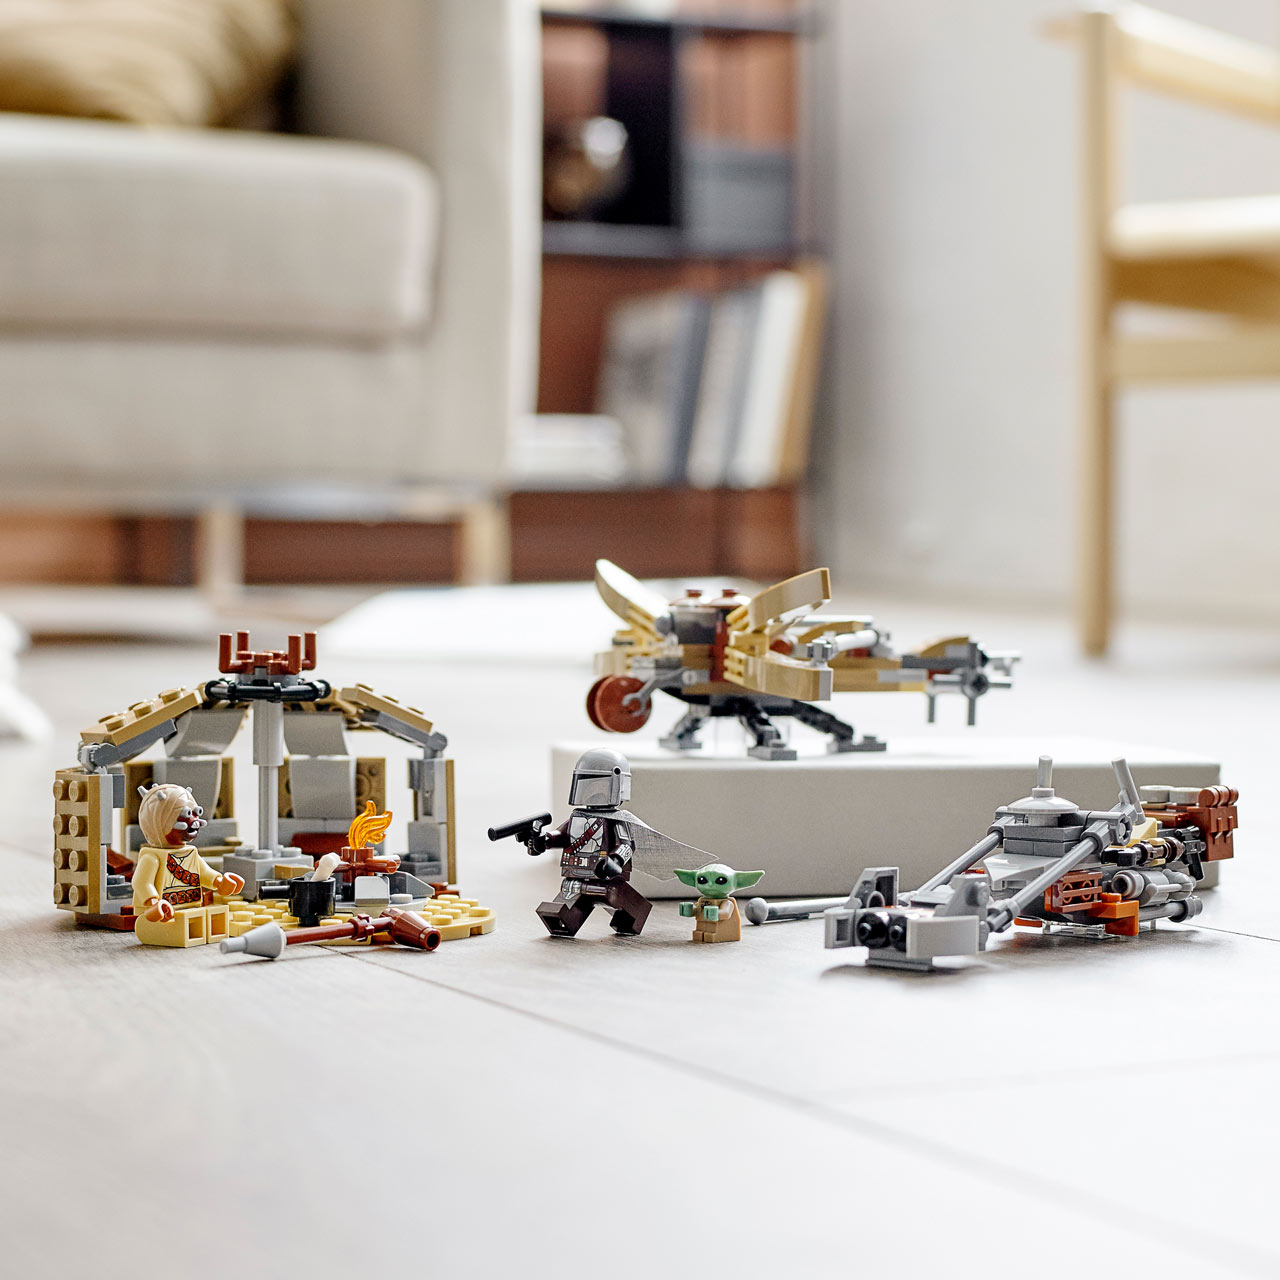 The Trouble on Tatooine Building Set by The LEGO Group